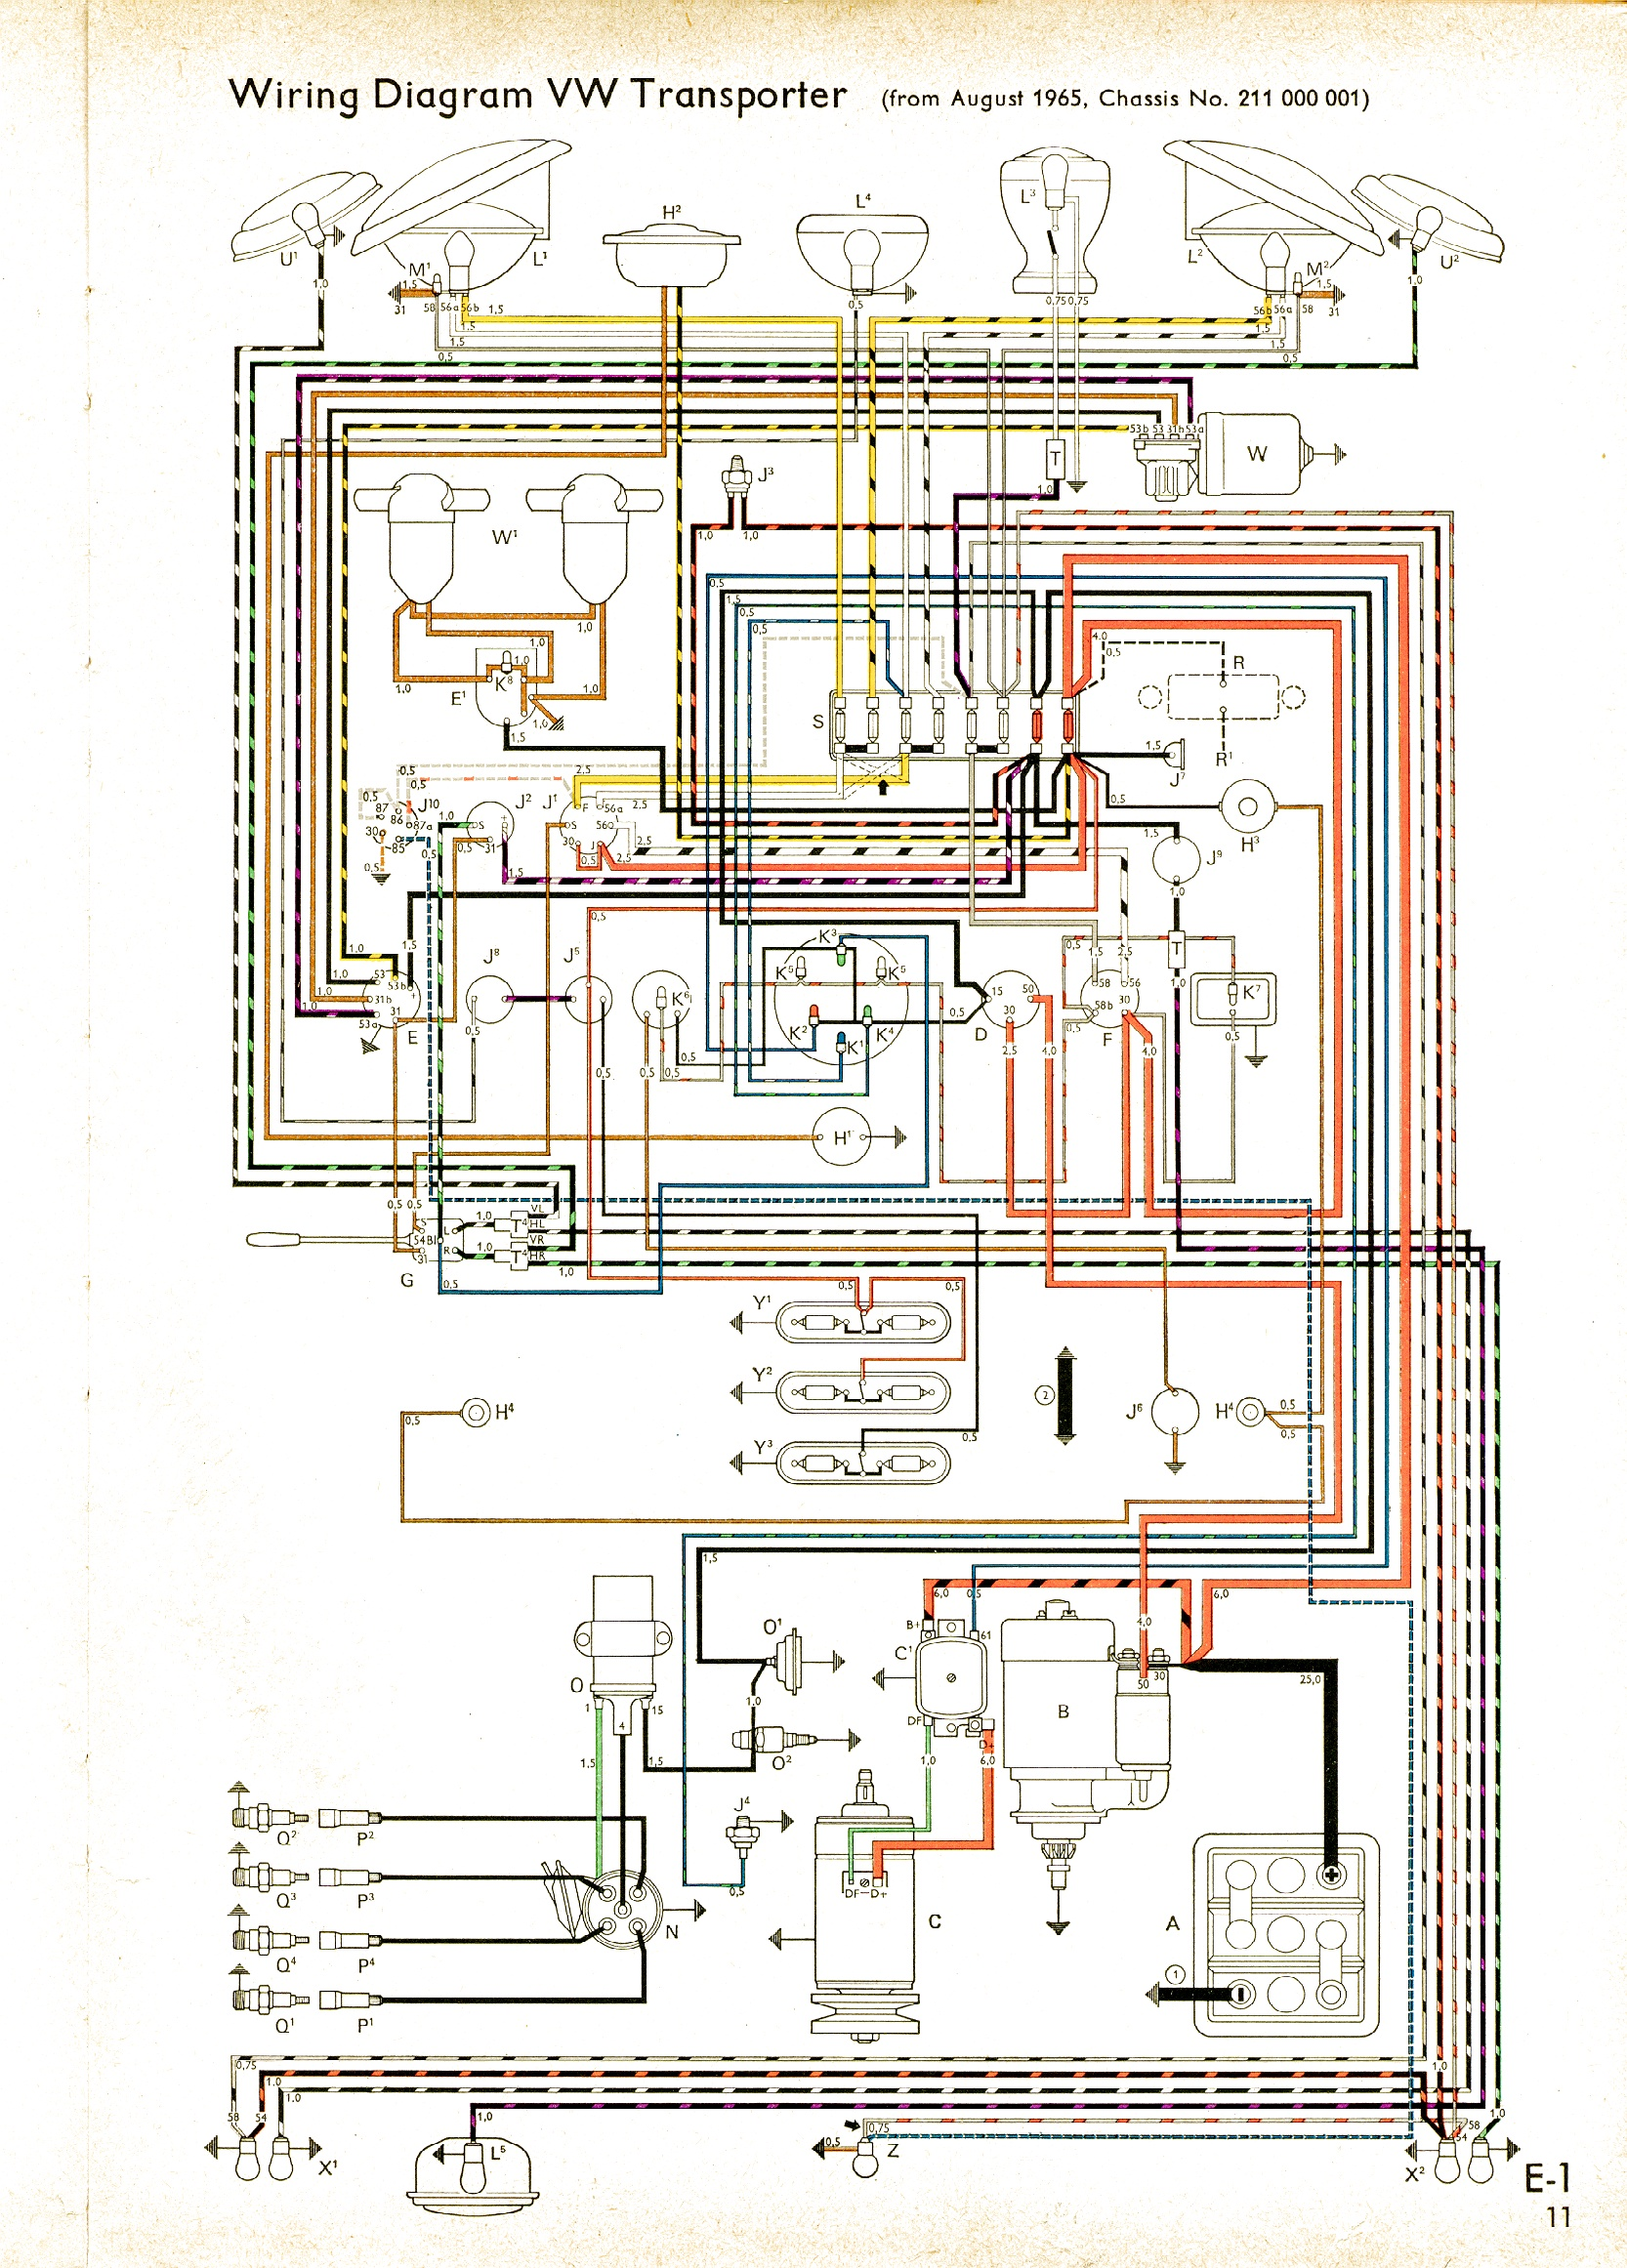 1967 vw beetle wiring diagram RIDAwNe 1967 vw bug wiring diagram on 1967 download wirning diagrams vw bug wiring diagram at n-0.co